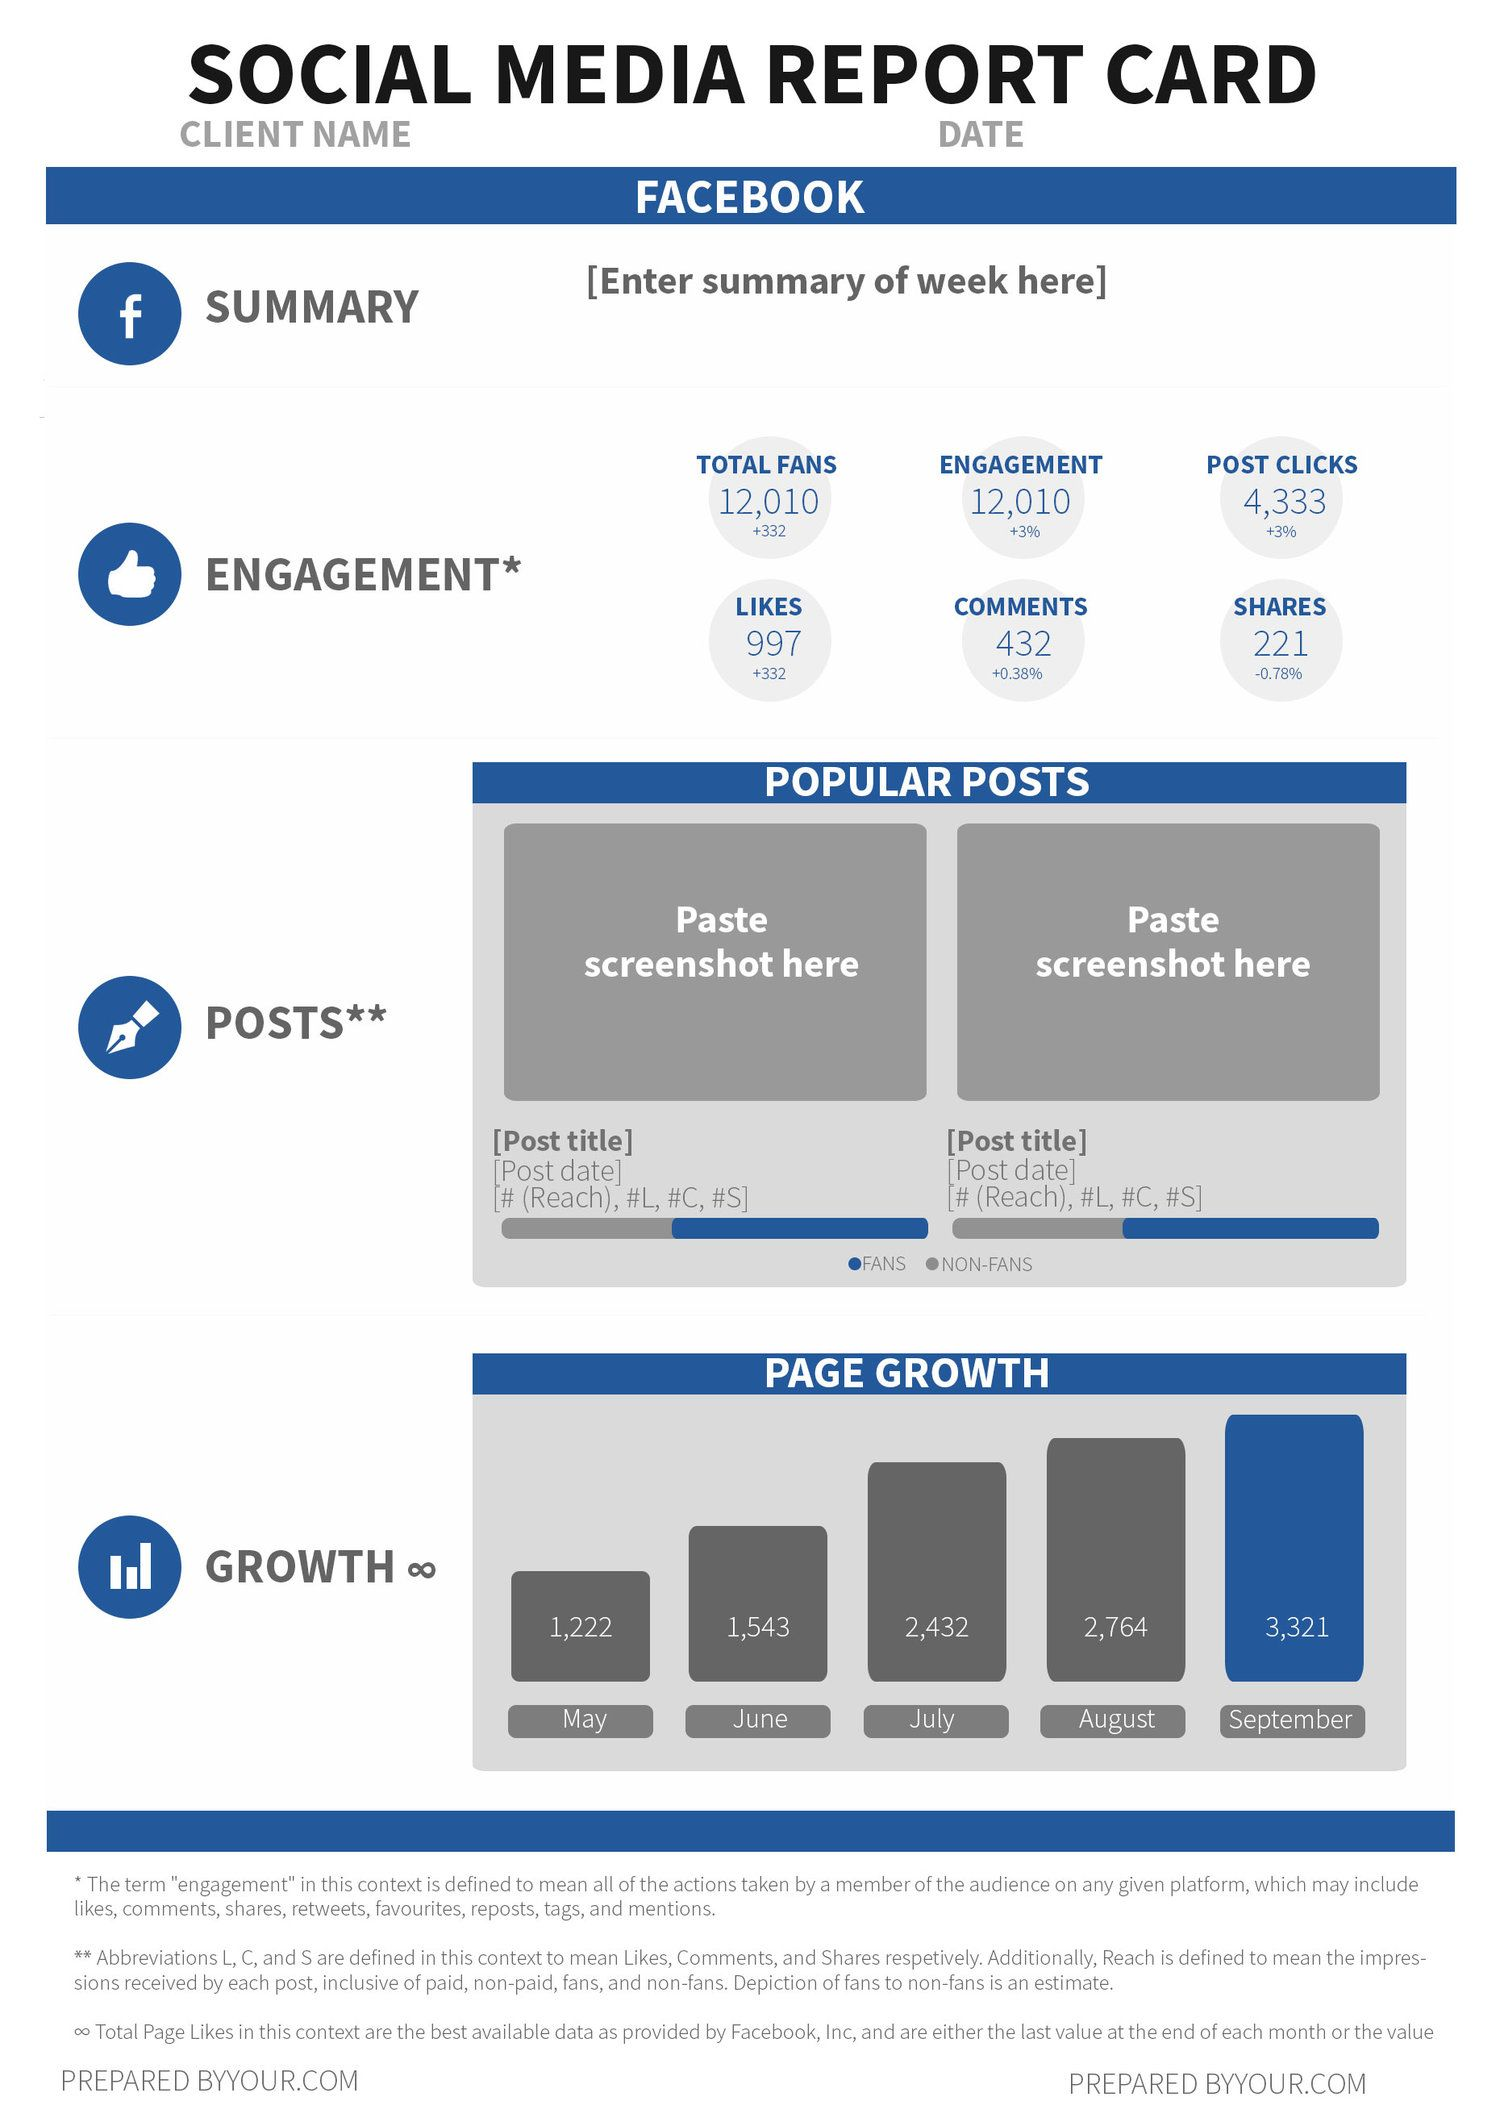 Use this FREE Social Media Report Card Template to WOW your Boss